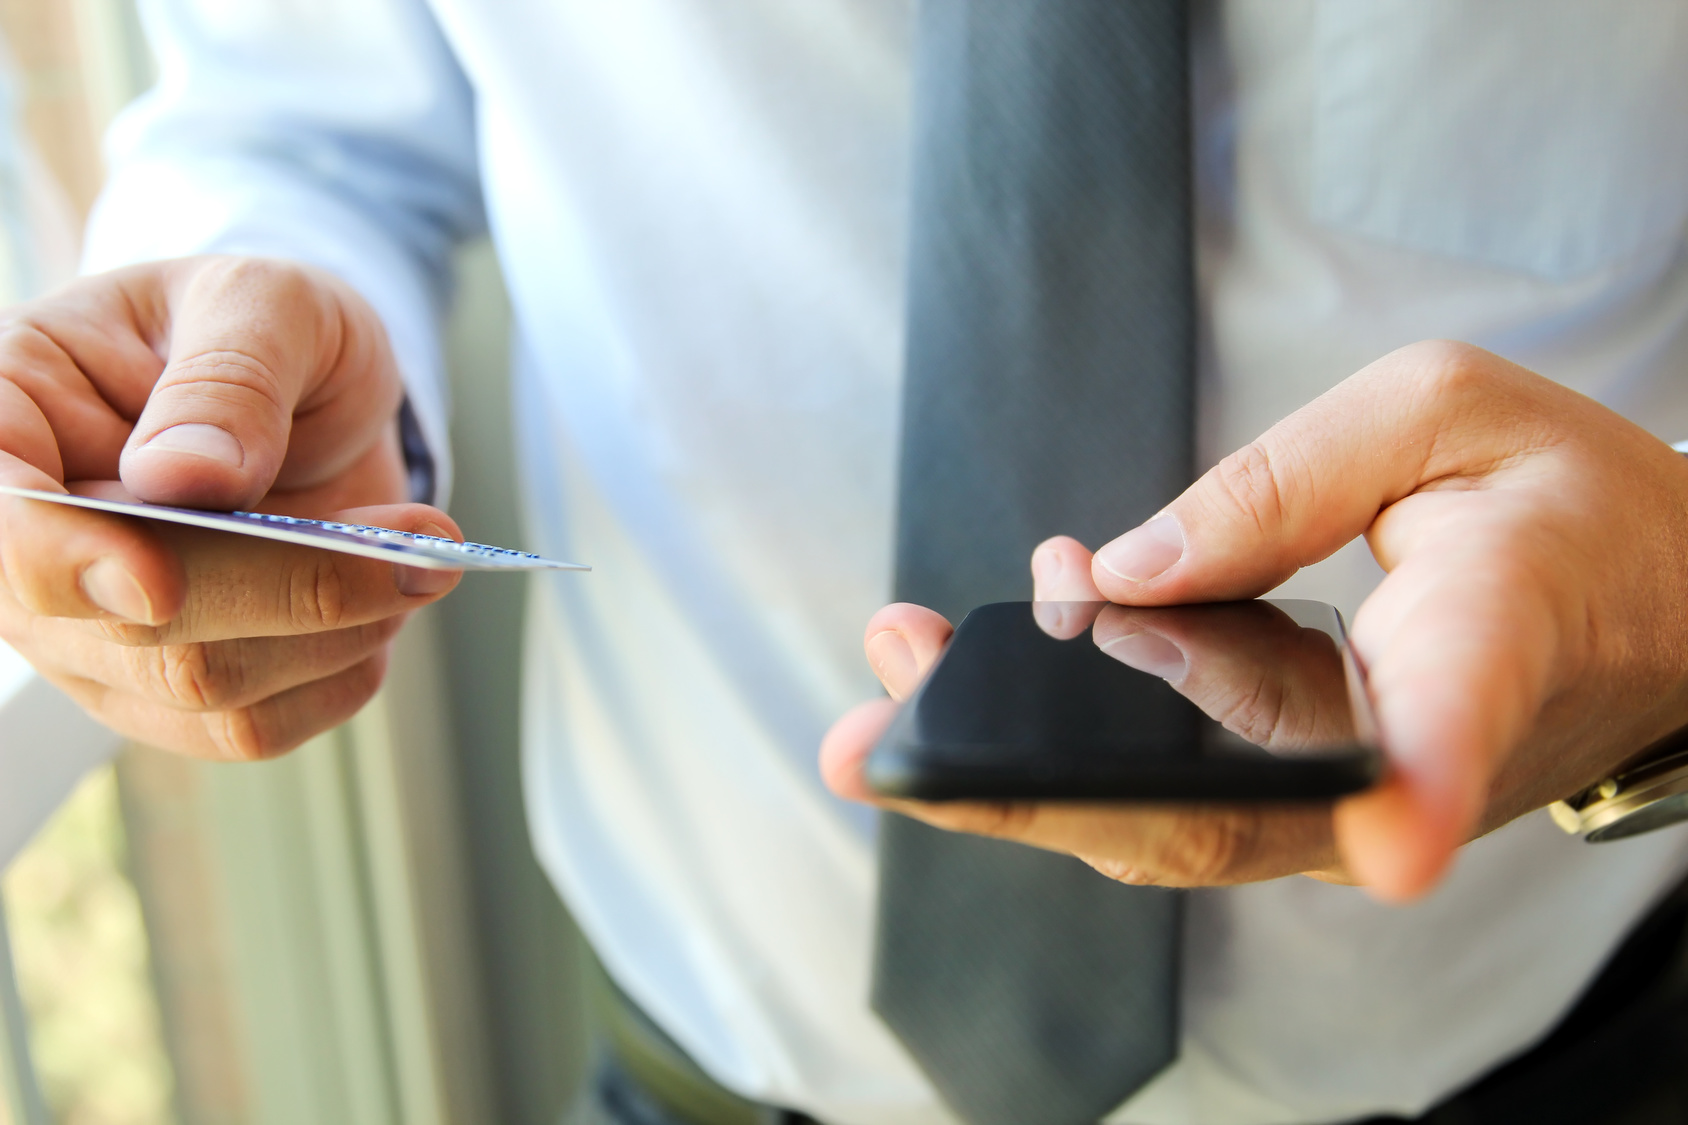 Chase Card Users To Find Pay Apps Rewarding | PaymentsJournal